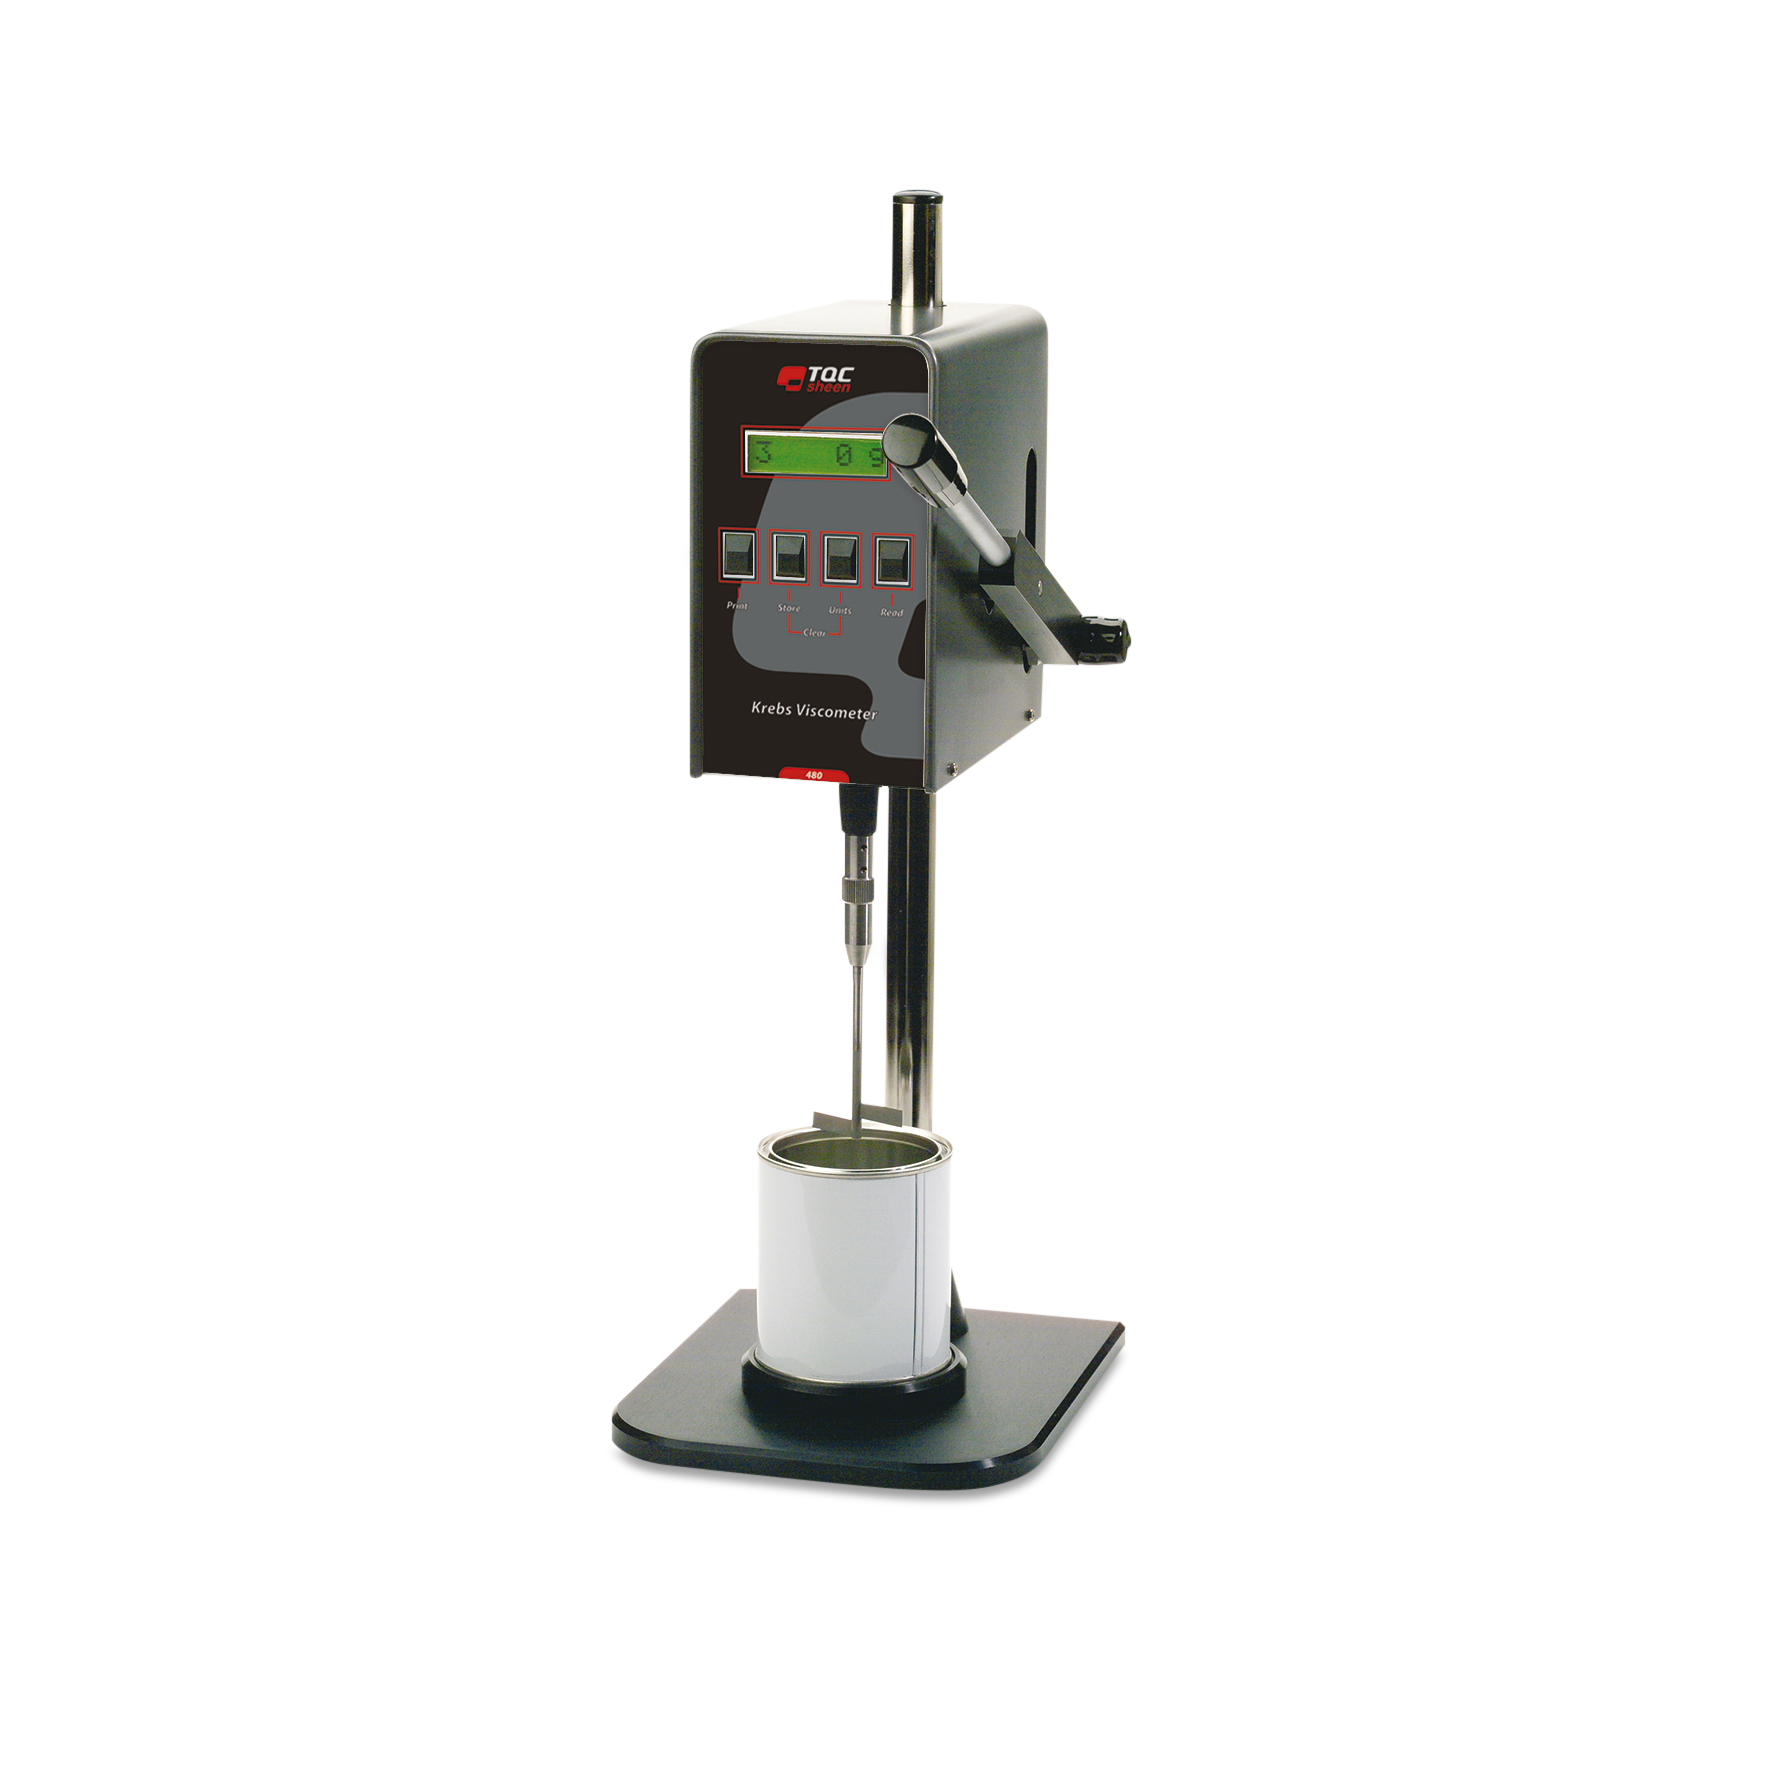 TQC-Sheen Digital Krebs Viscometer